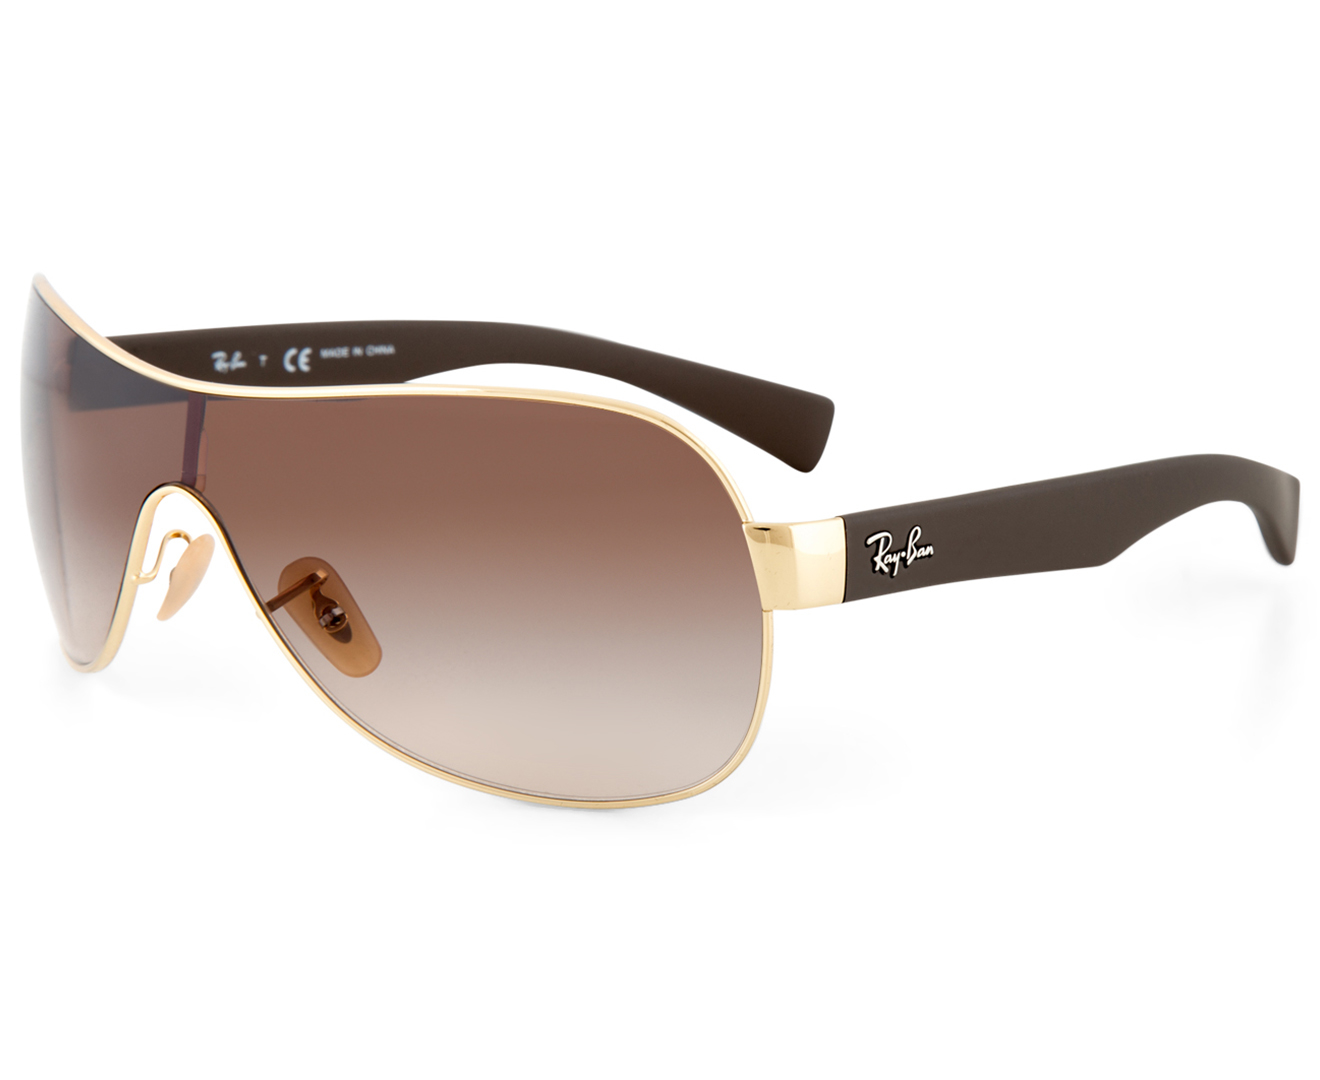 acf3091cb91 Ray Ban Rb3471 Uk